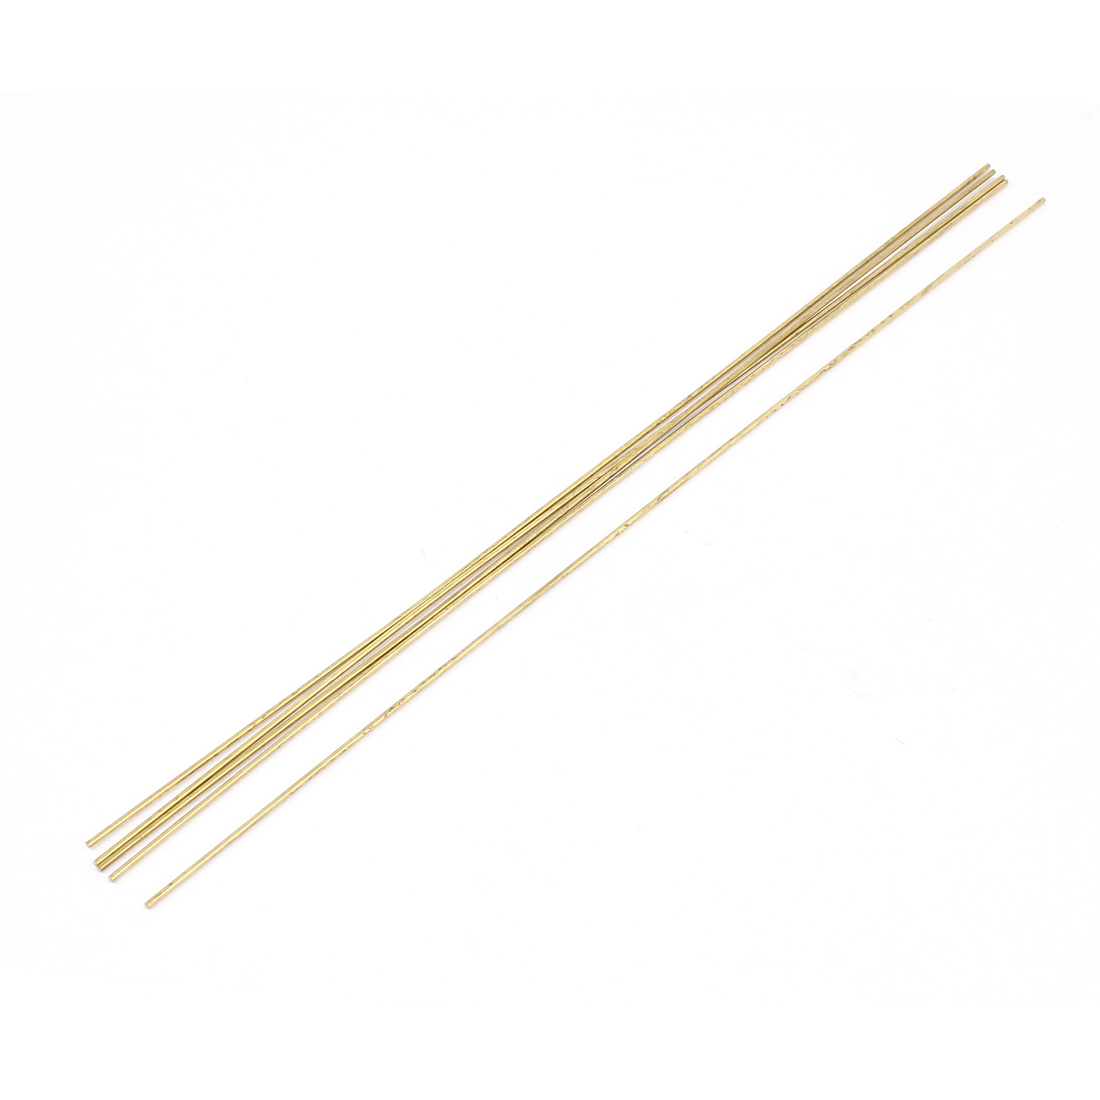 5 Pcs 1.5mm Dia 300mm Length Brass Solid Round Rod Bar for DIY RC Airplane